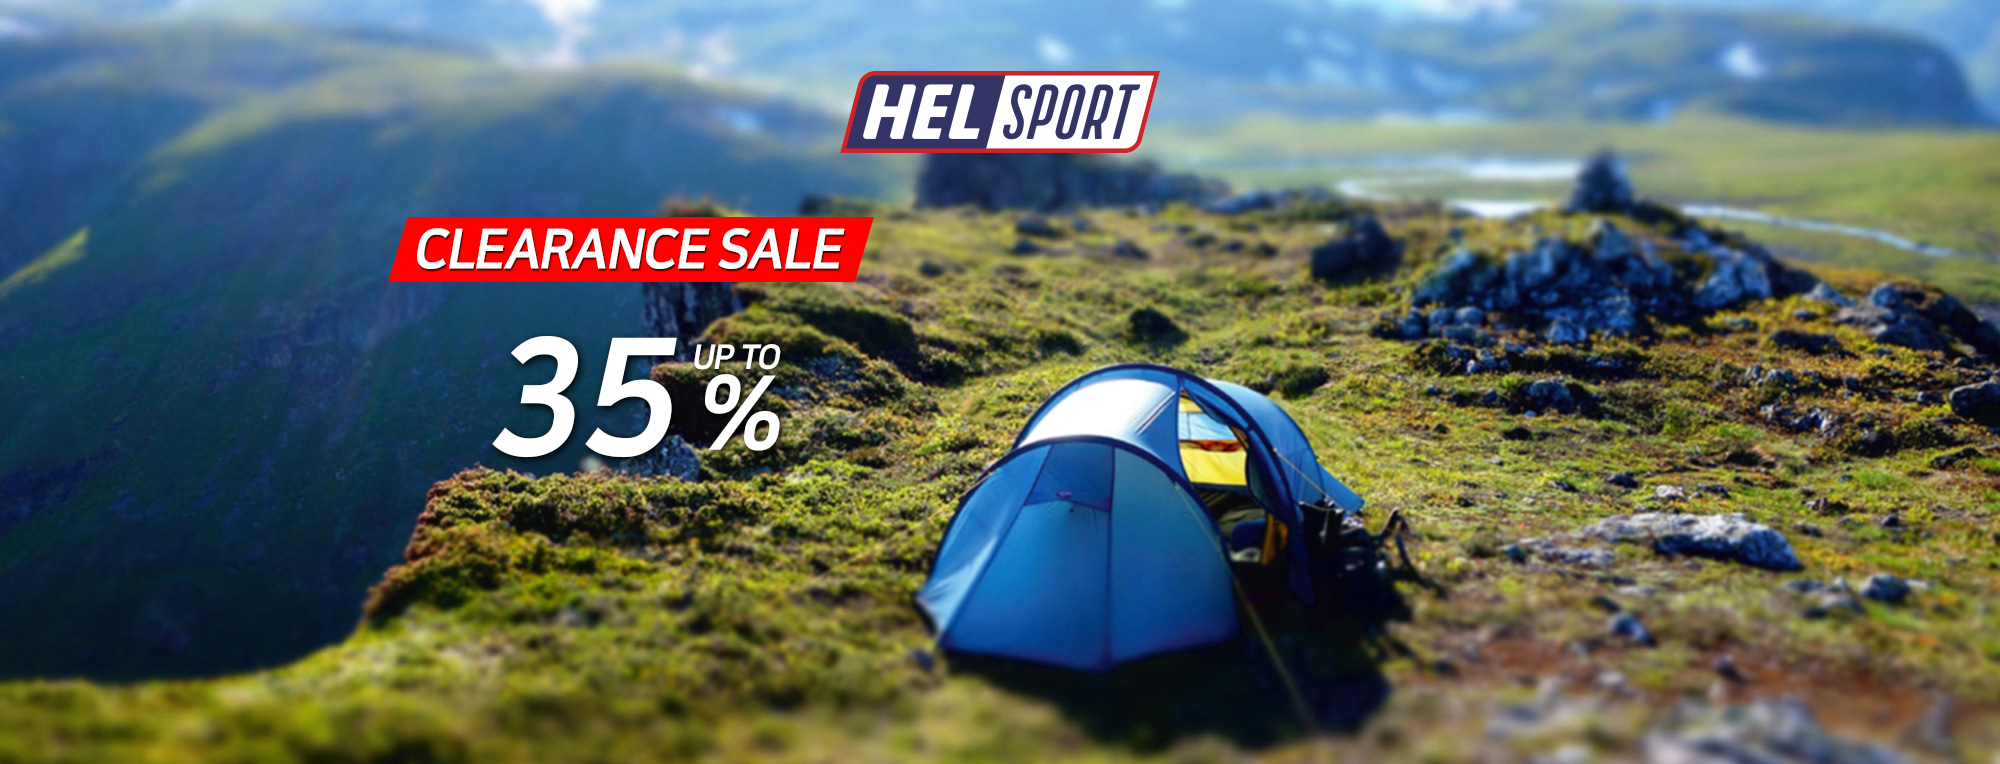 Helsport Clearance Sale